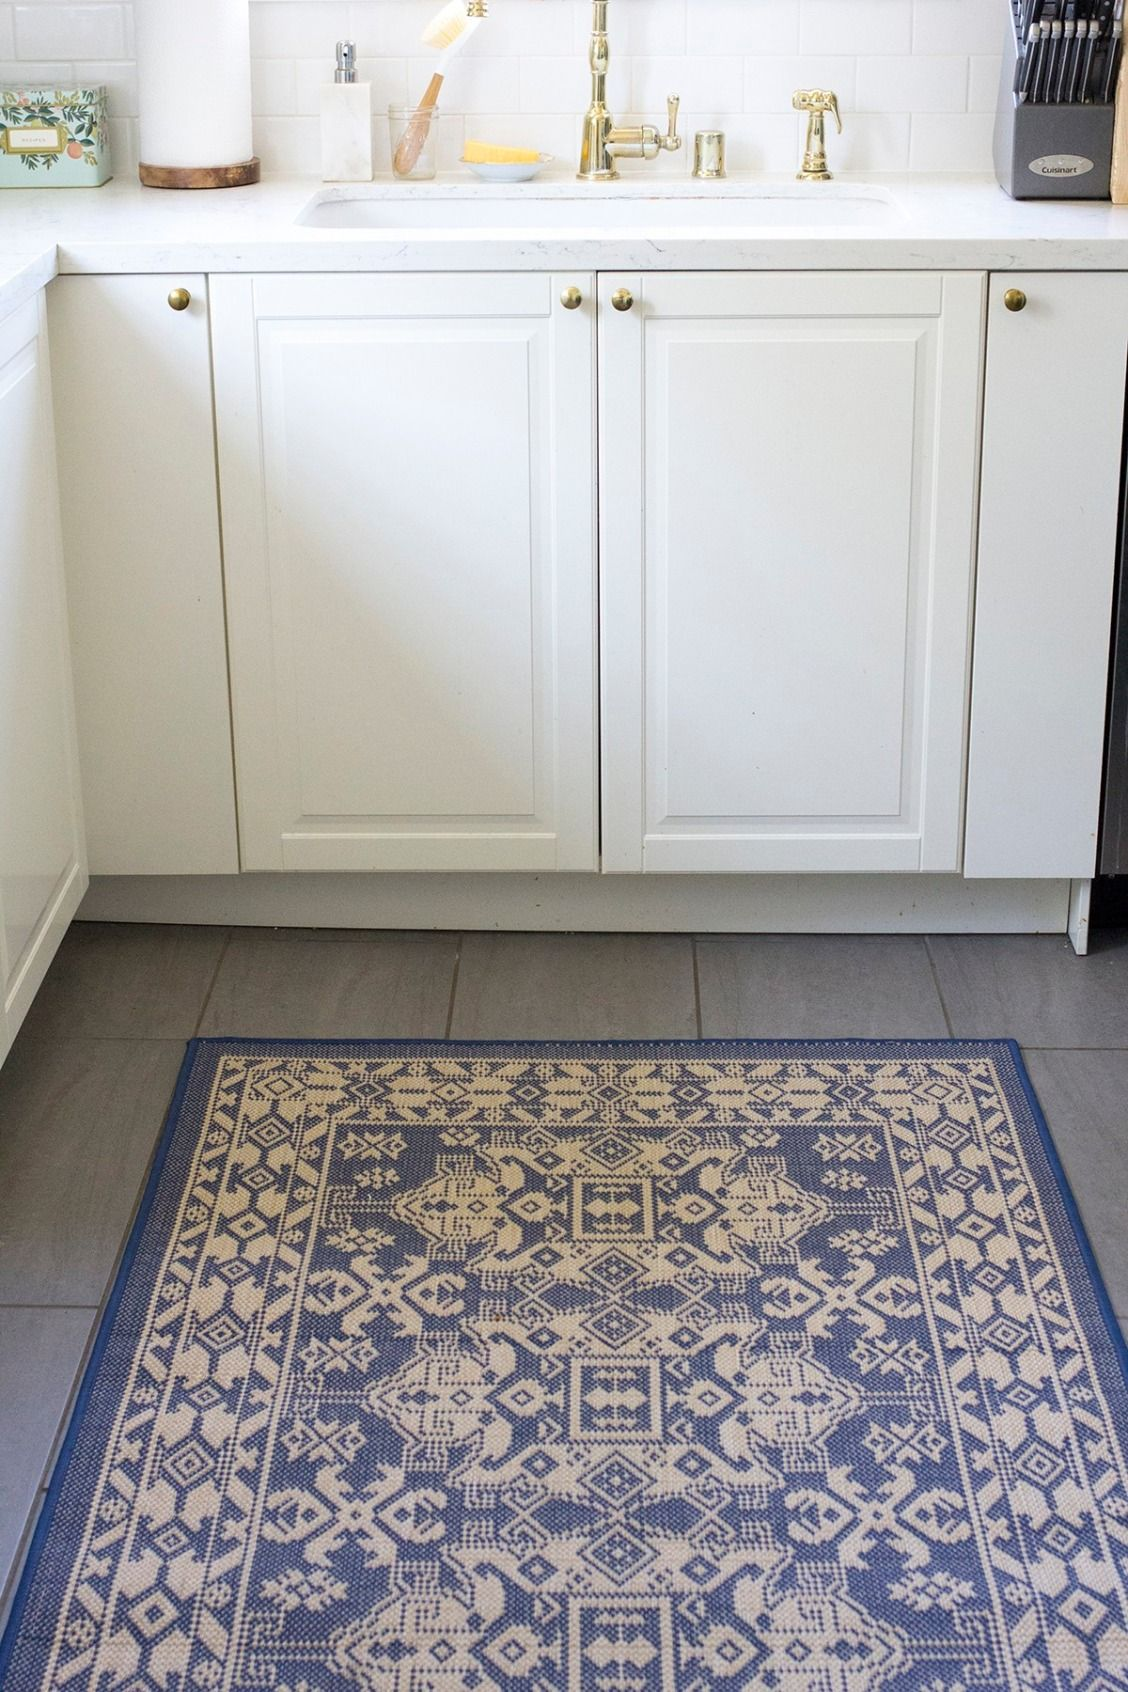 Magnolia Home Rug For My Kitchen Refresh With Bed Bath Beyond